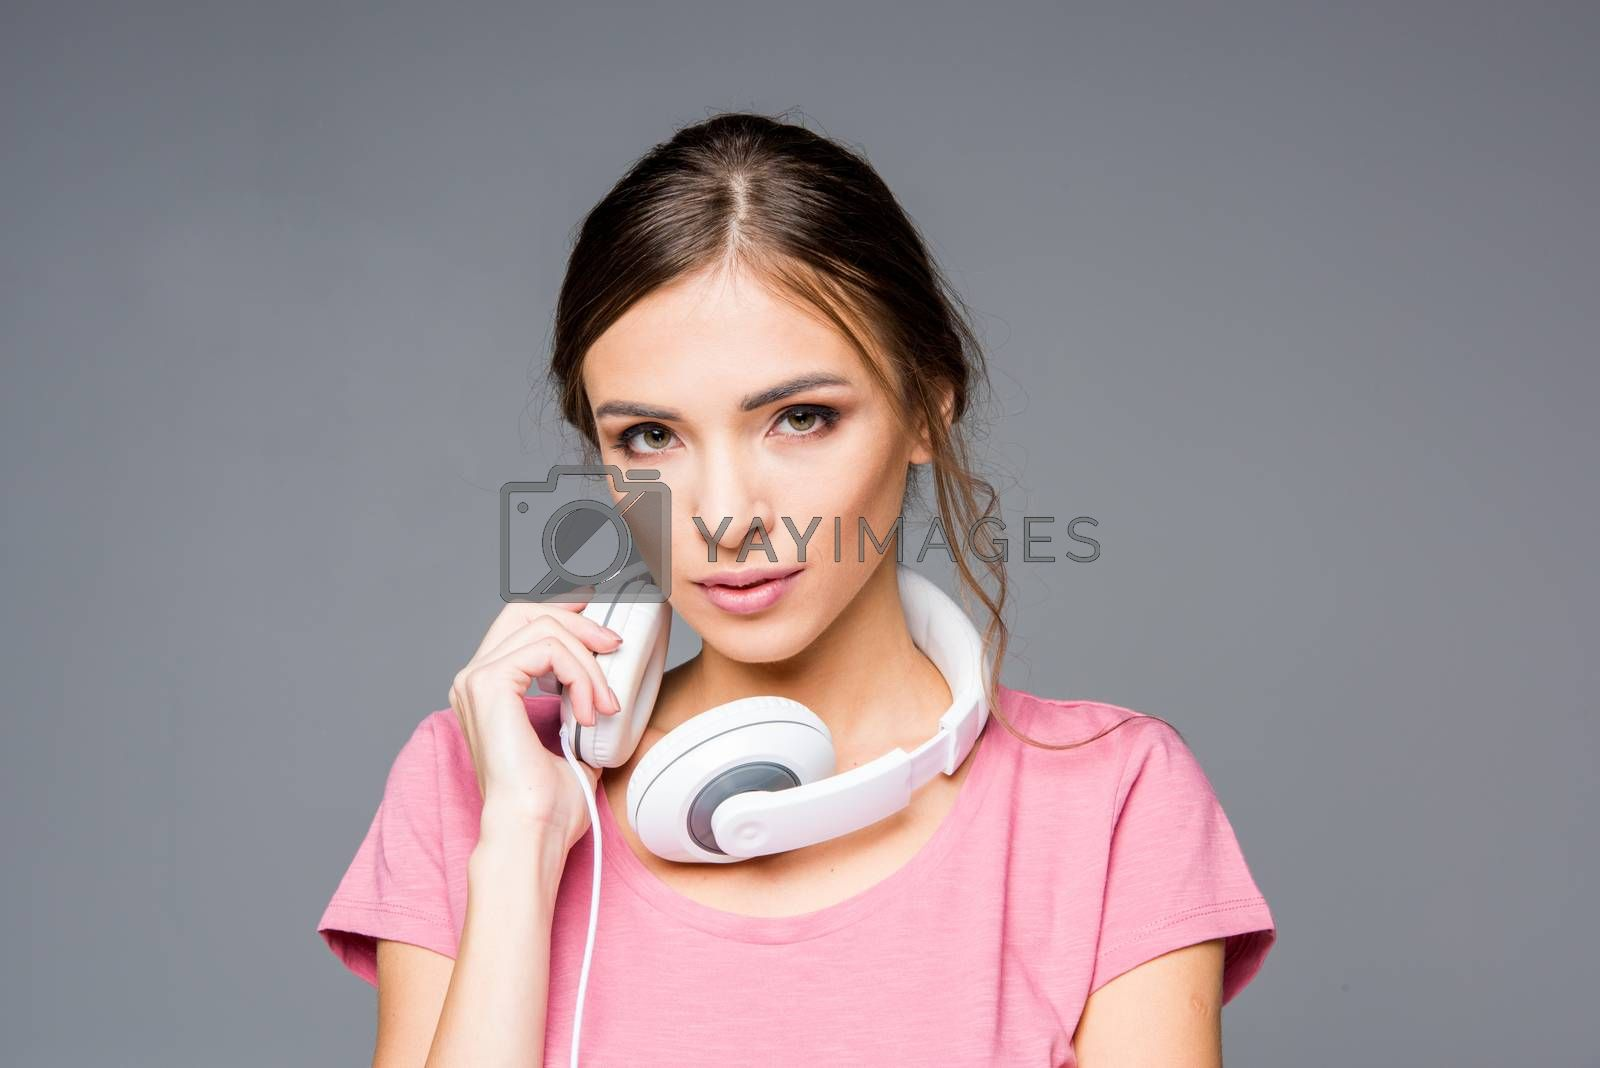 Smiling young woman with white headphones looking at camera on grey